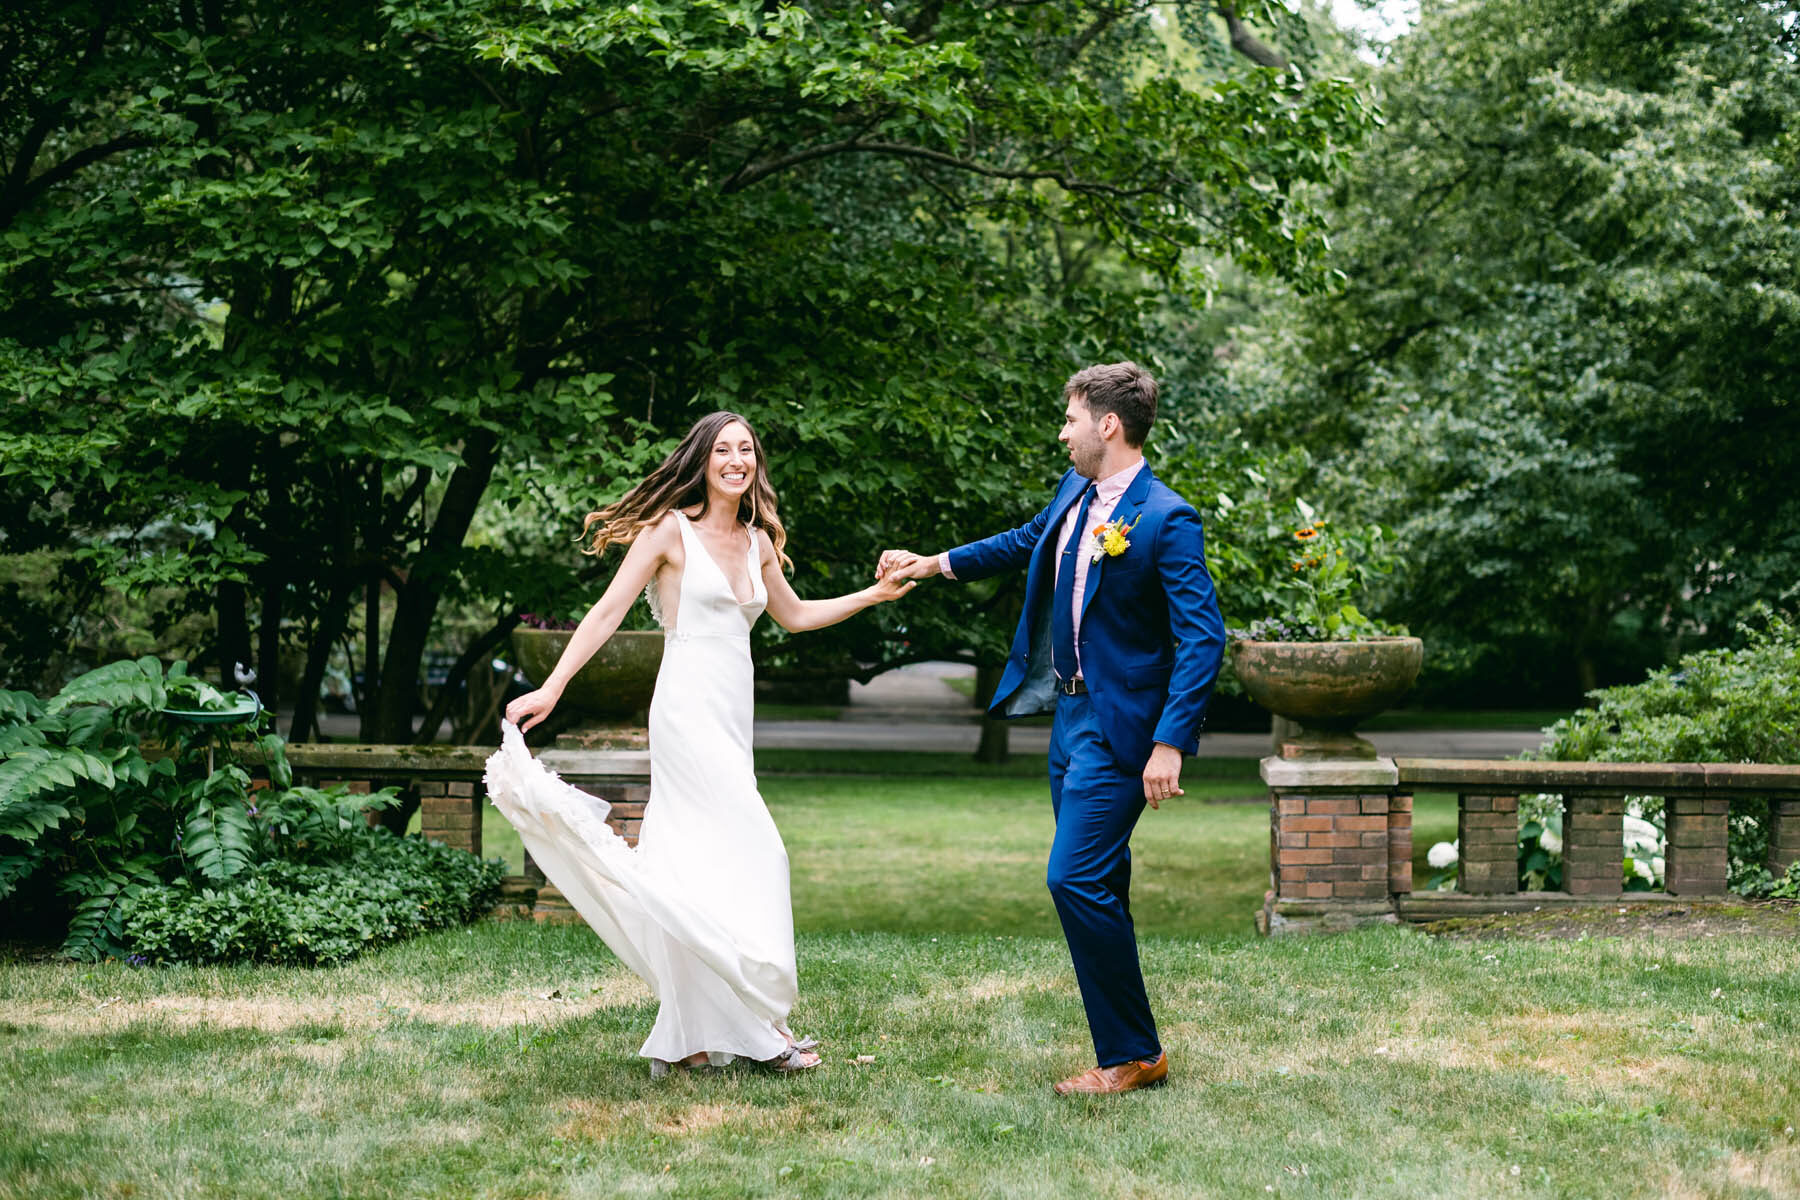 Chicago Elopement Wedding